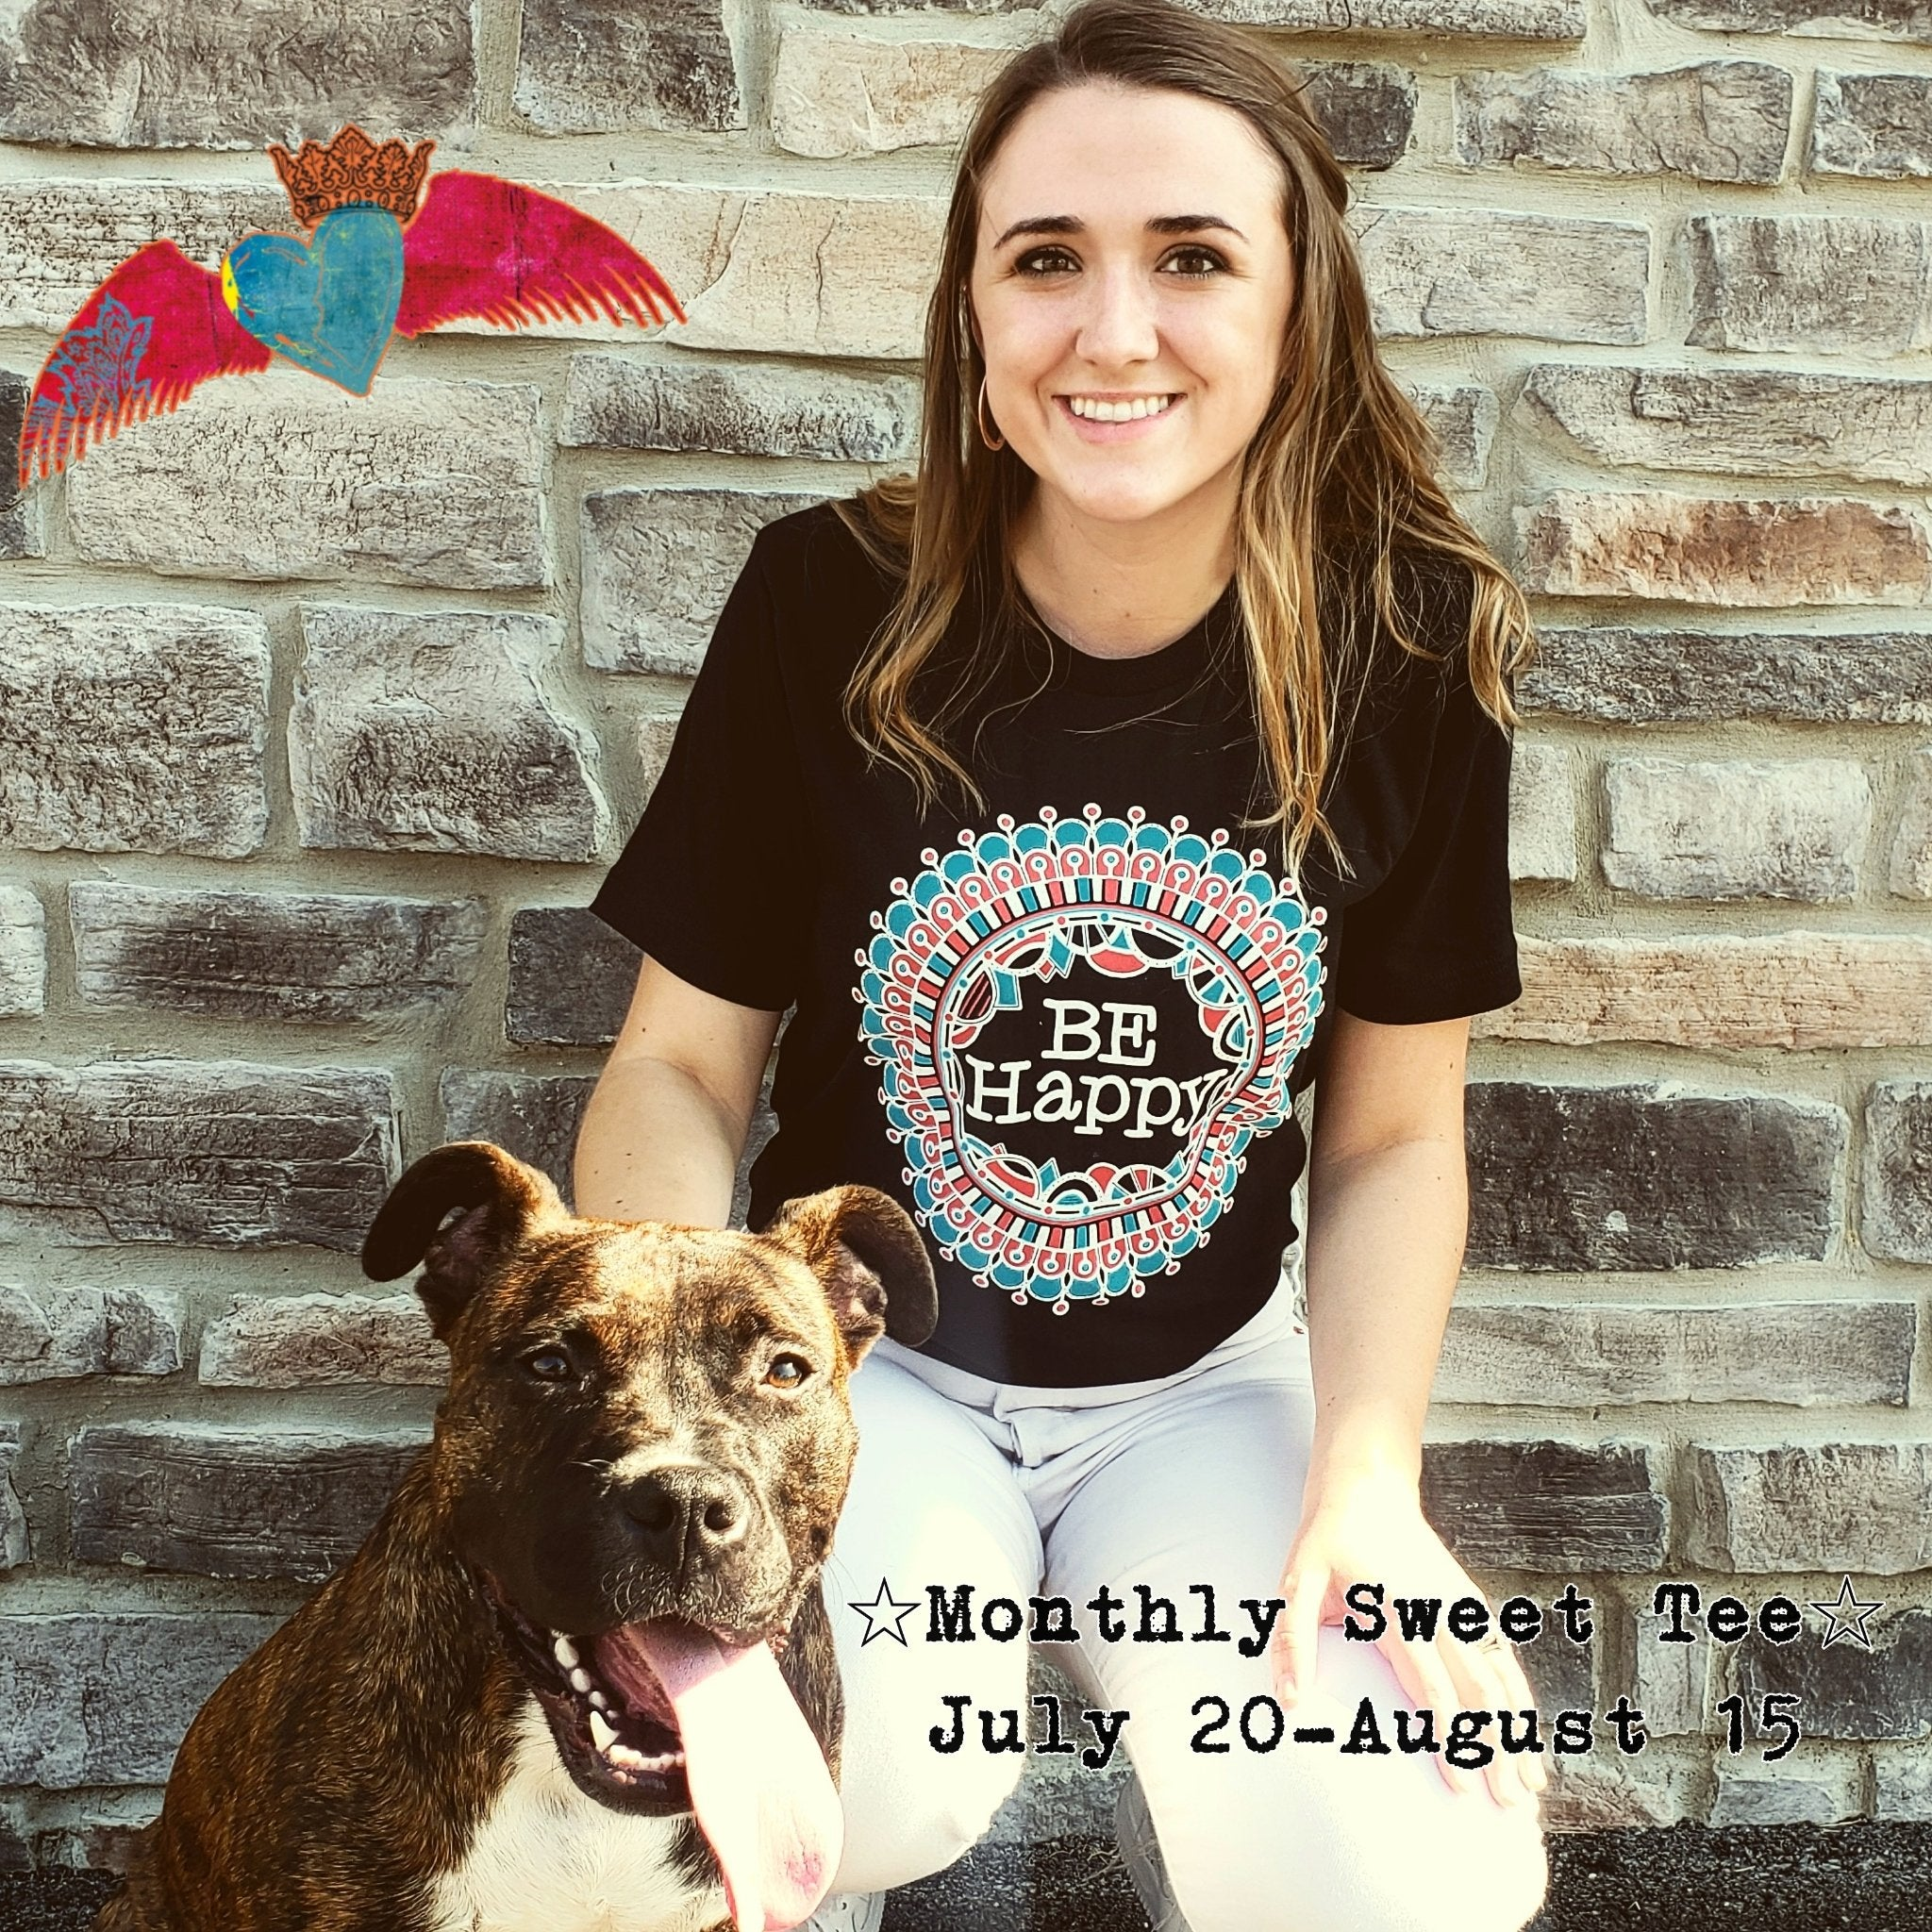 Monthly Sweet Tee (New Unique Design Monthly! Limited Quantities!)